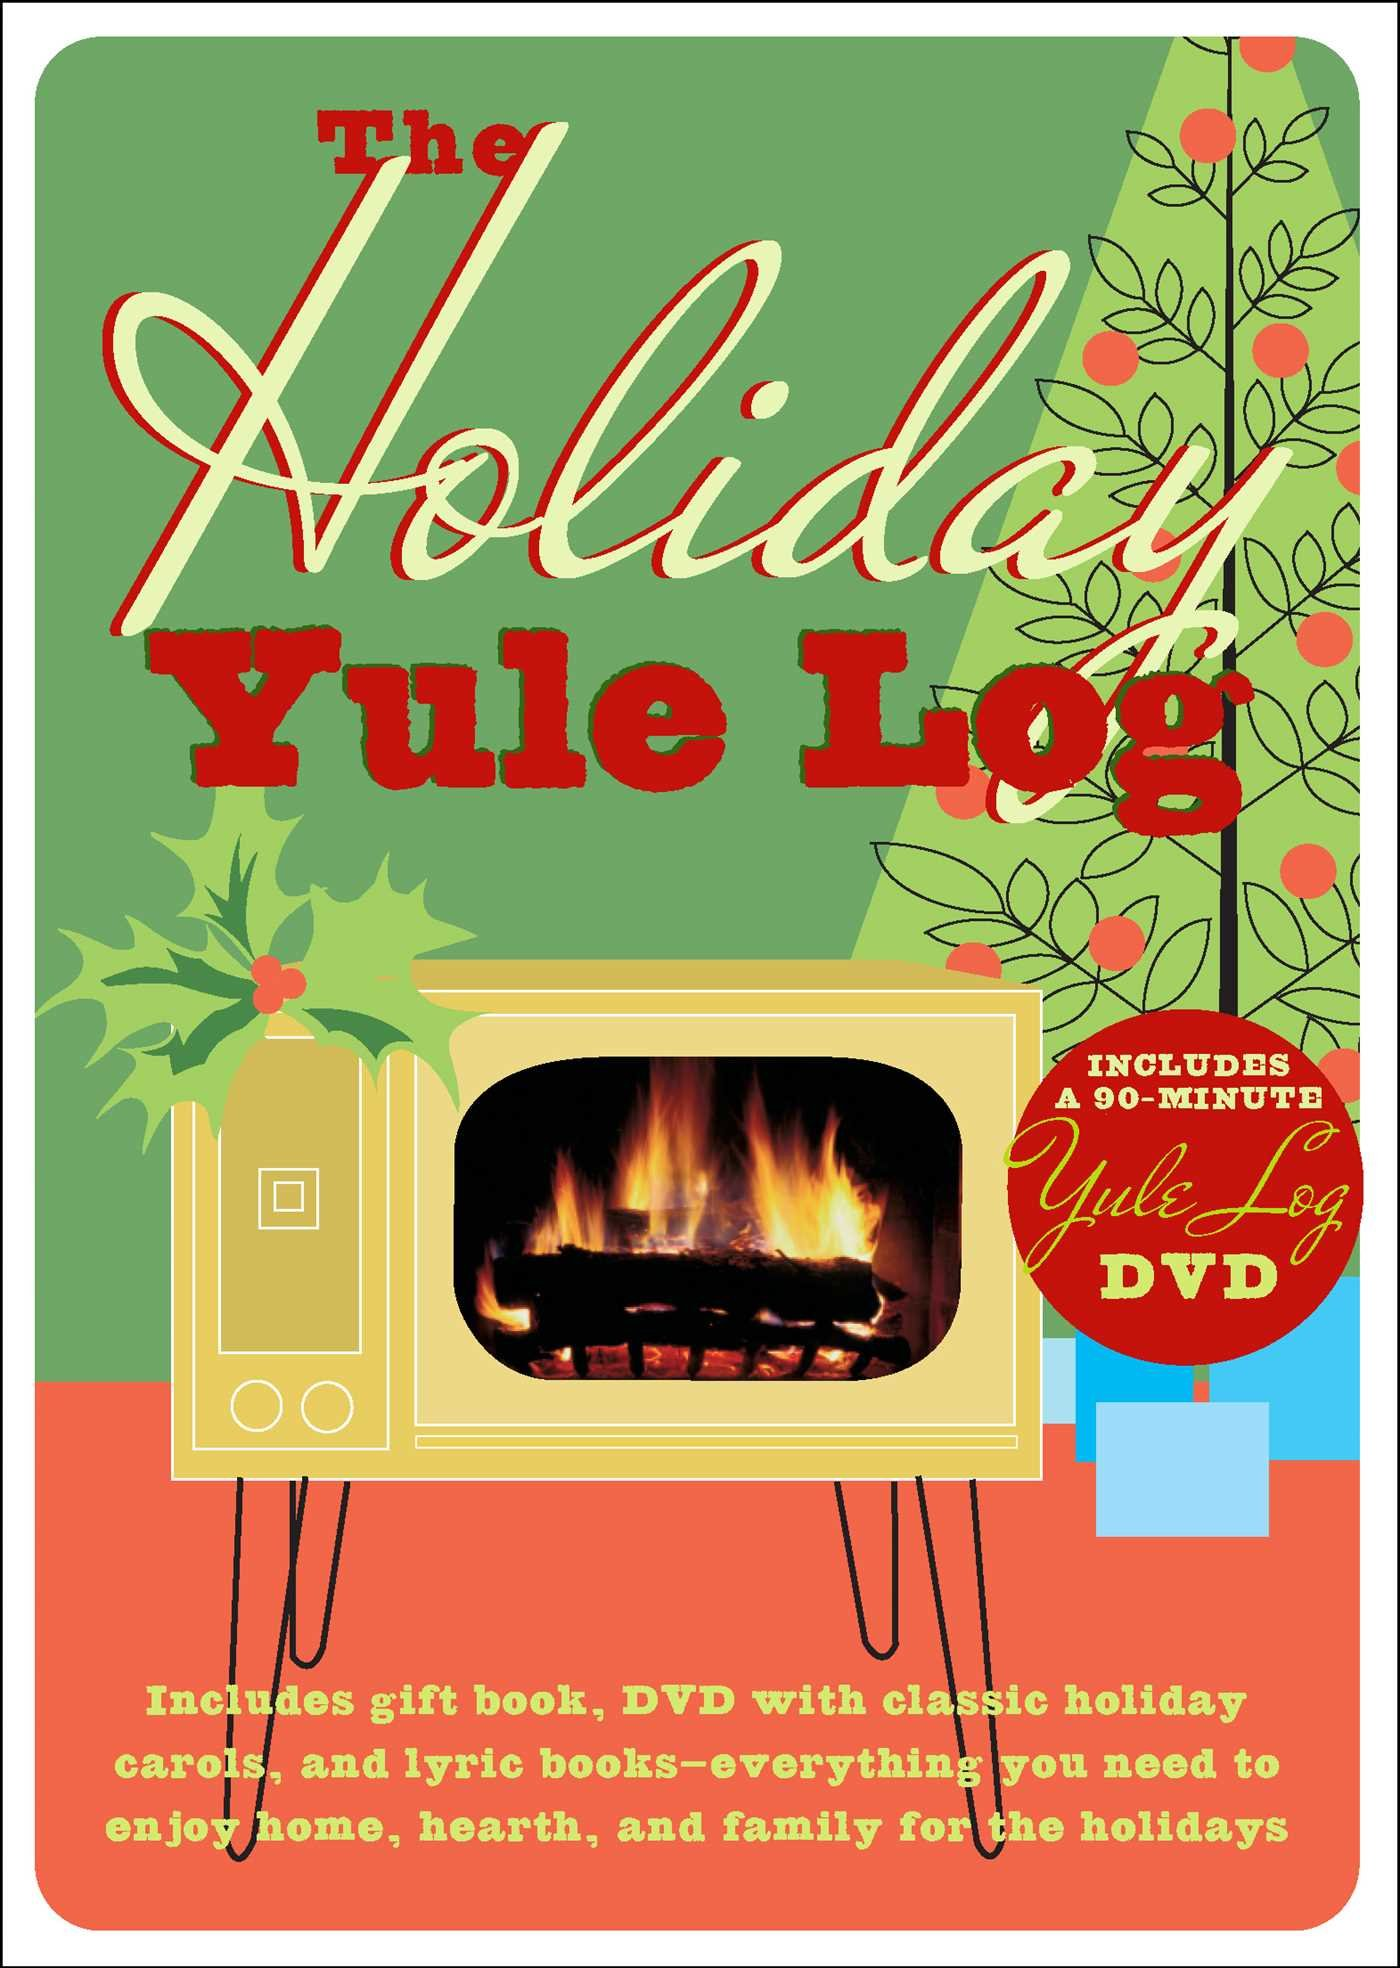 Download The Holiday Yule Log: Includes Gift Book, DVD with Classic Holiday Carols, and Lyric Books - Everything You Need to Enjoy Home, Hearth, and Family for the Holidays pdf